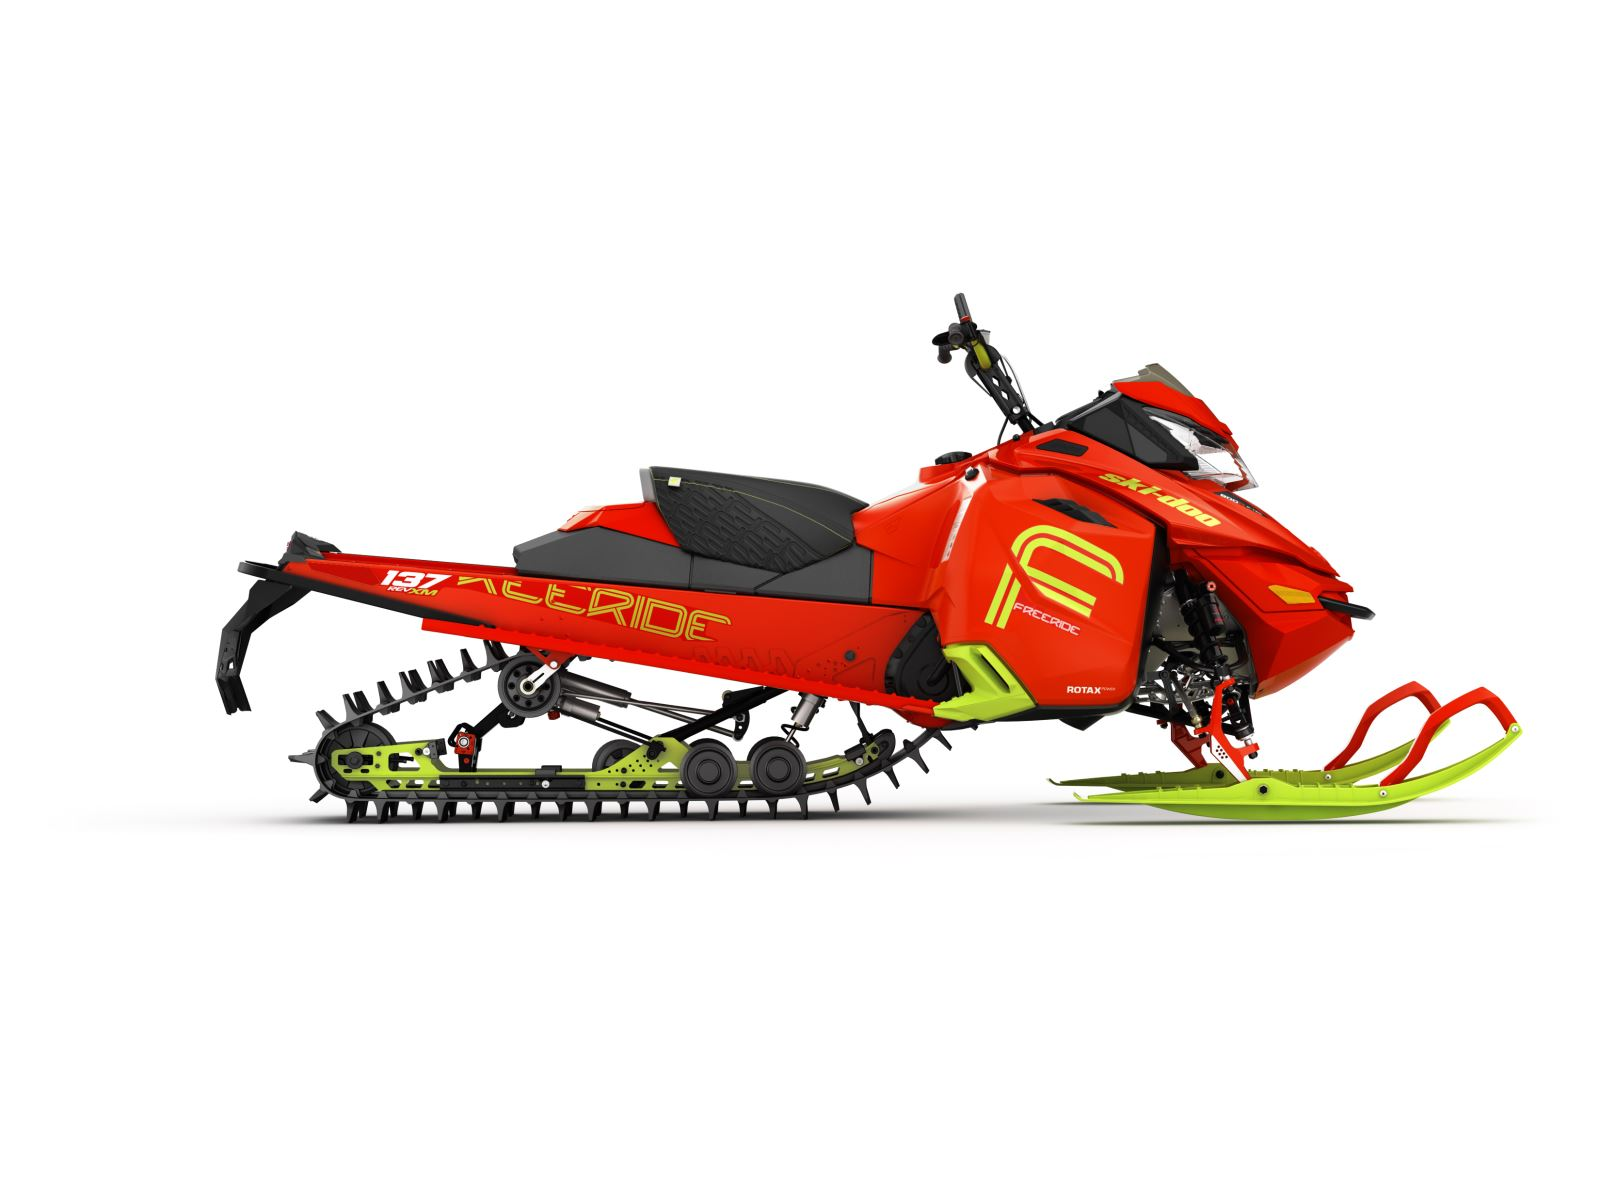 2016 Ski-Doo Freerides RAS 2 front suspension, new ...